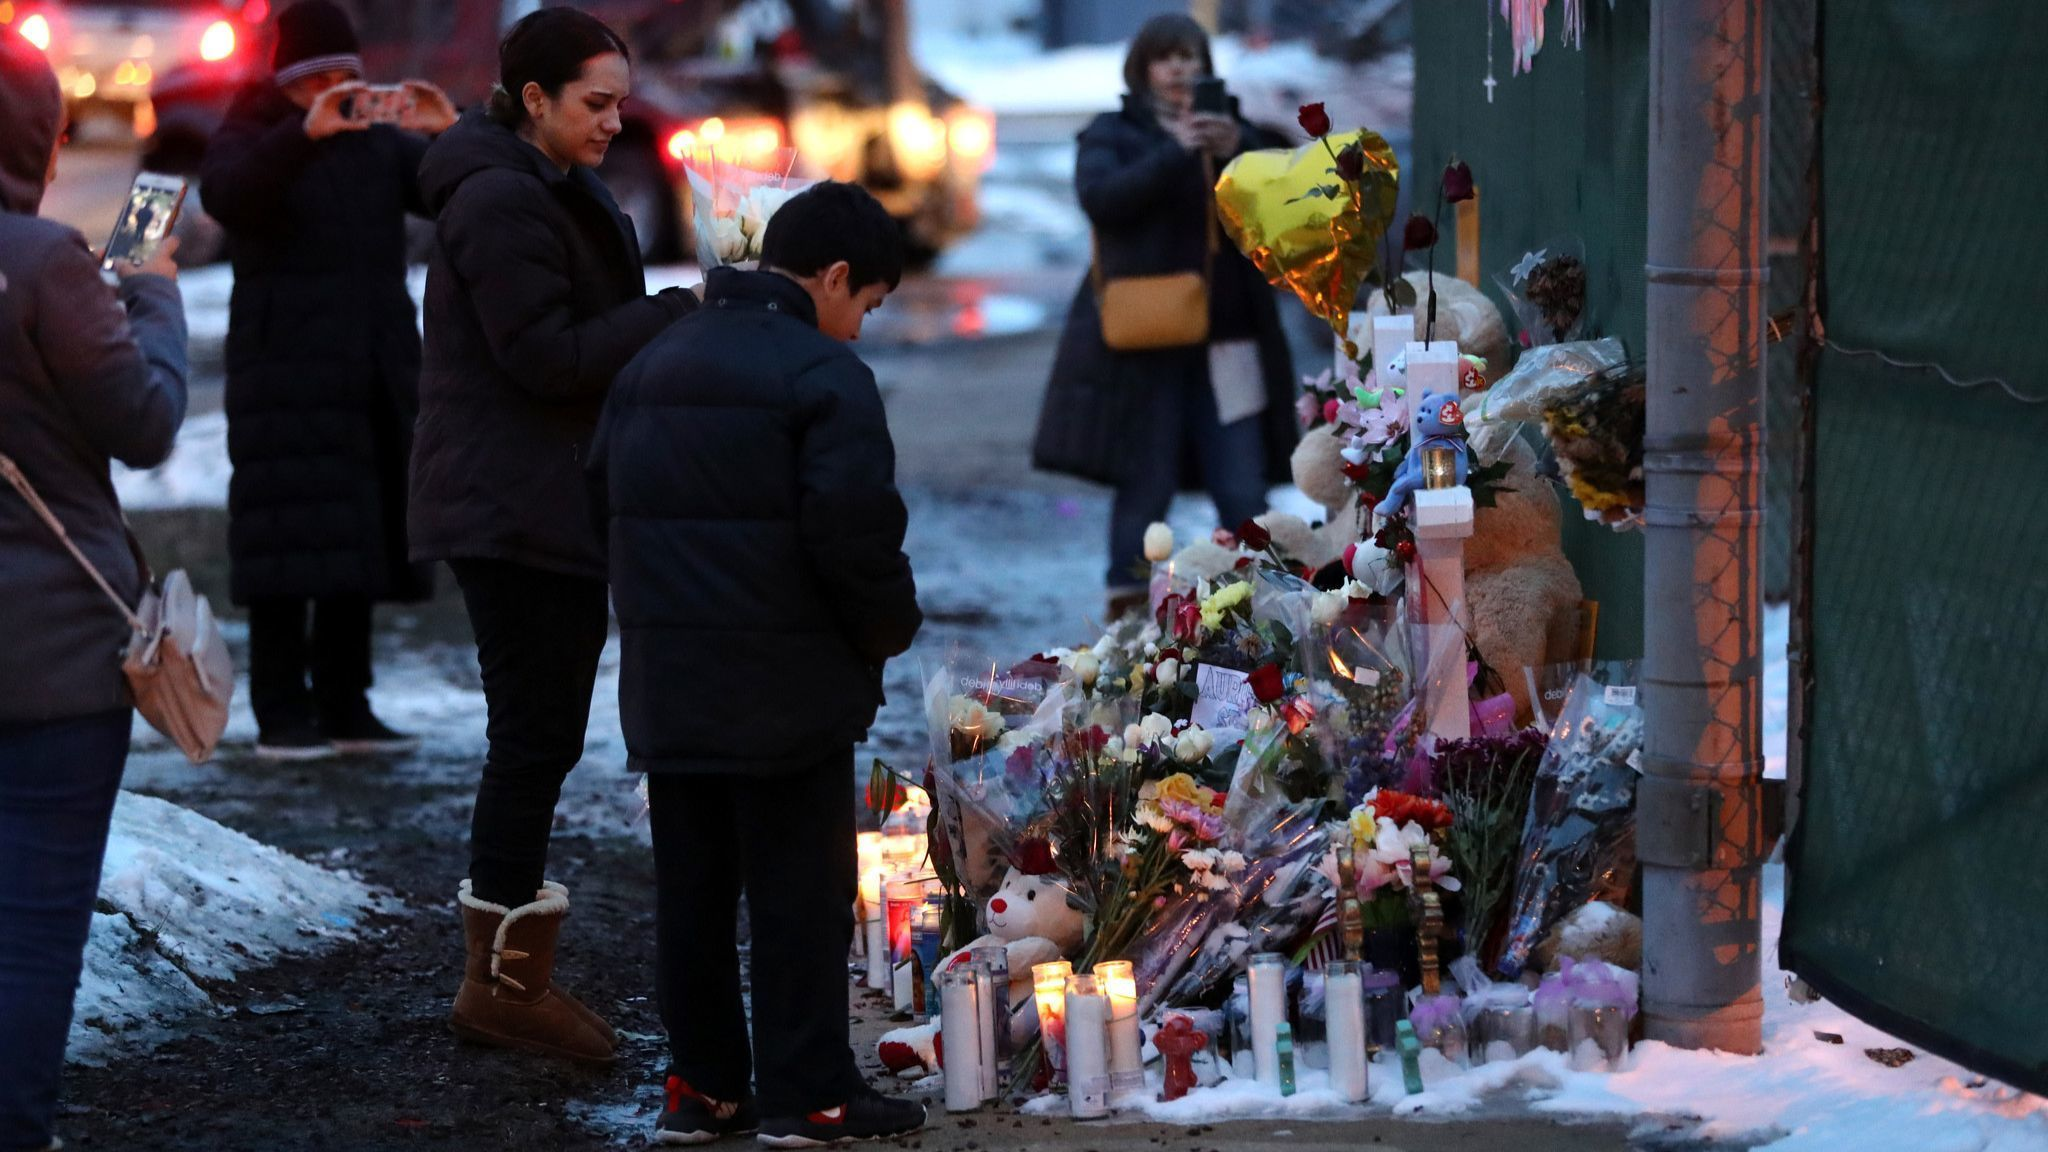 Wrongful death lawsuit filed by family of Aurora mass shooting victim